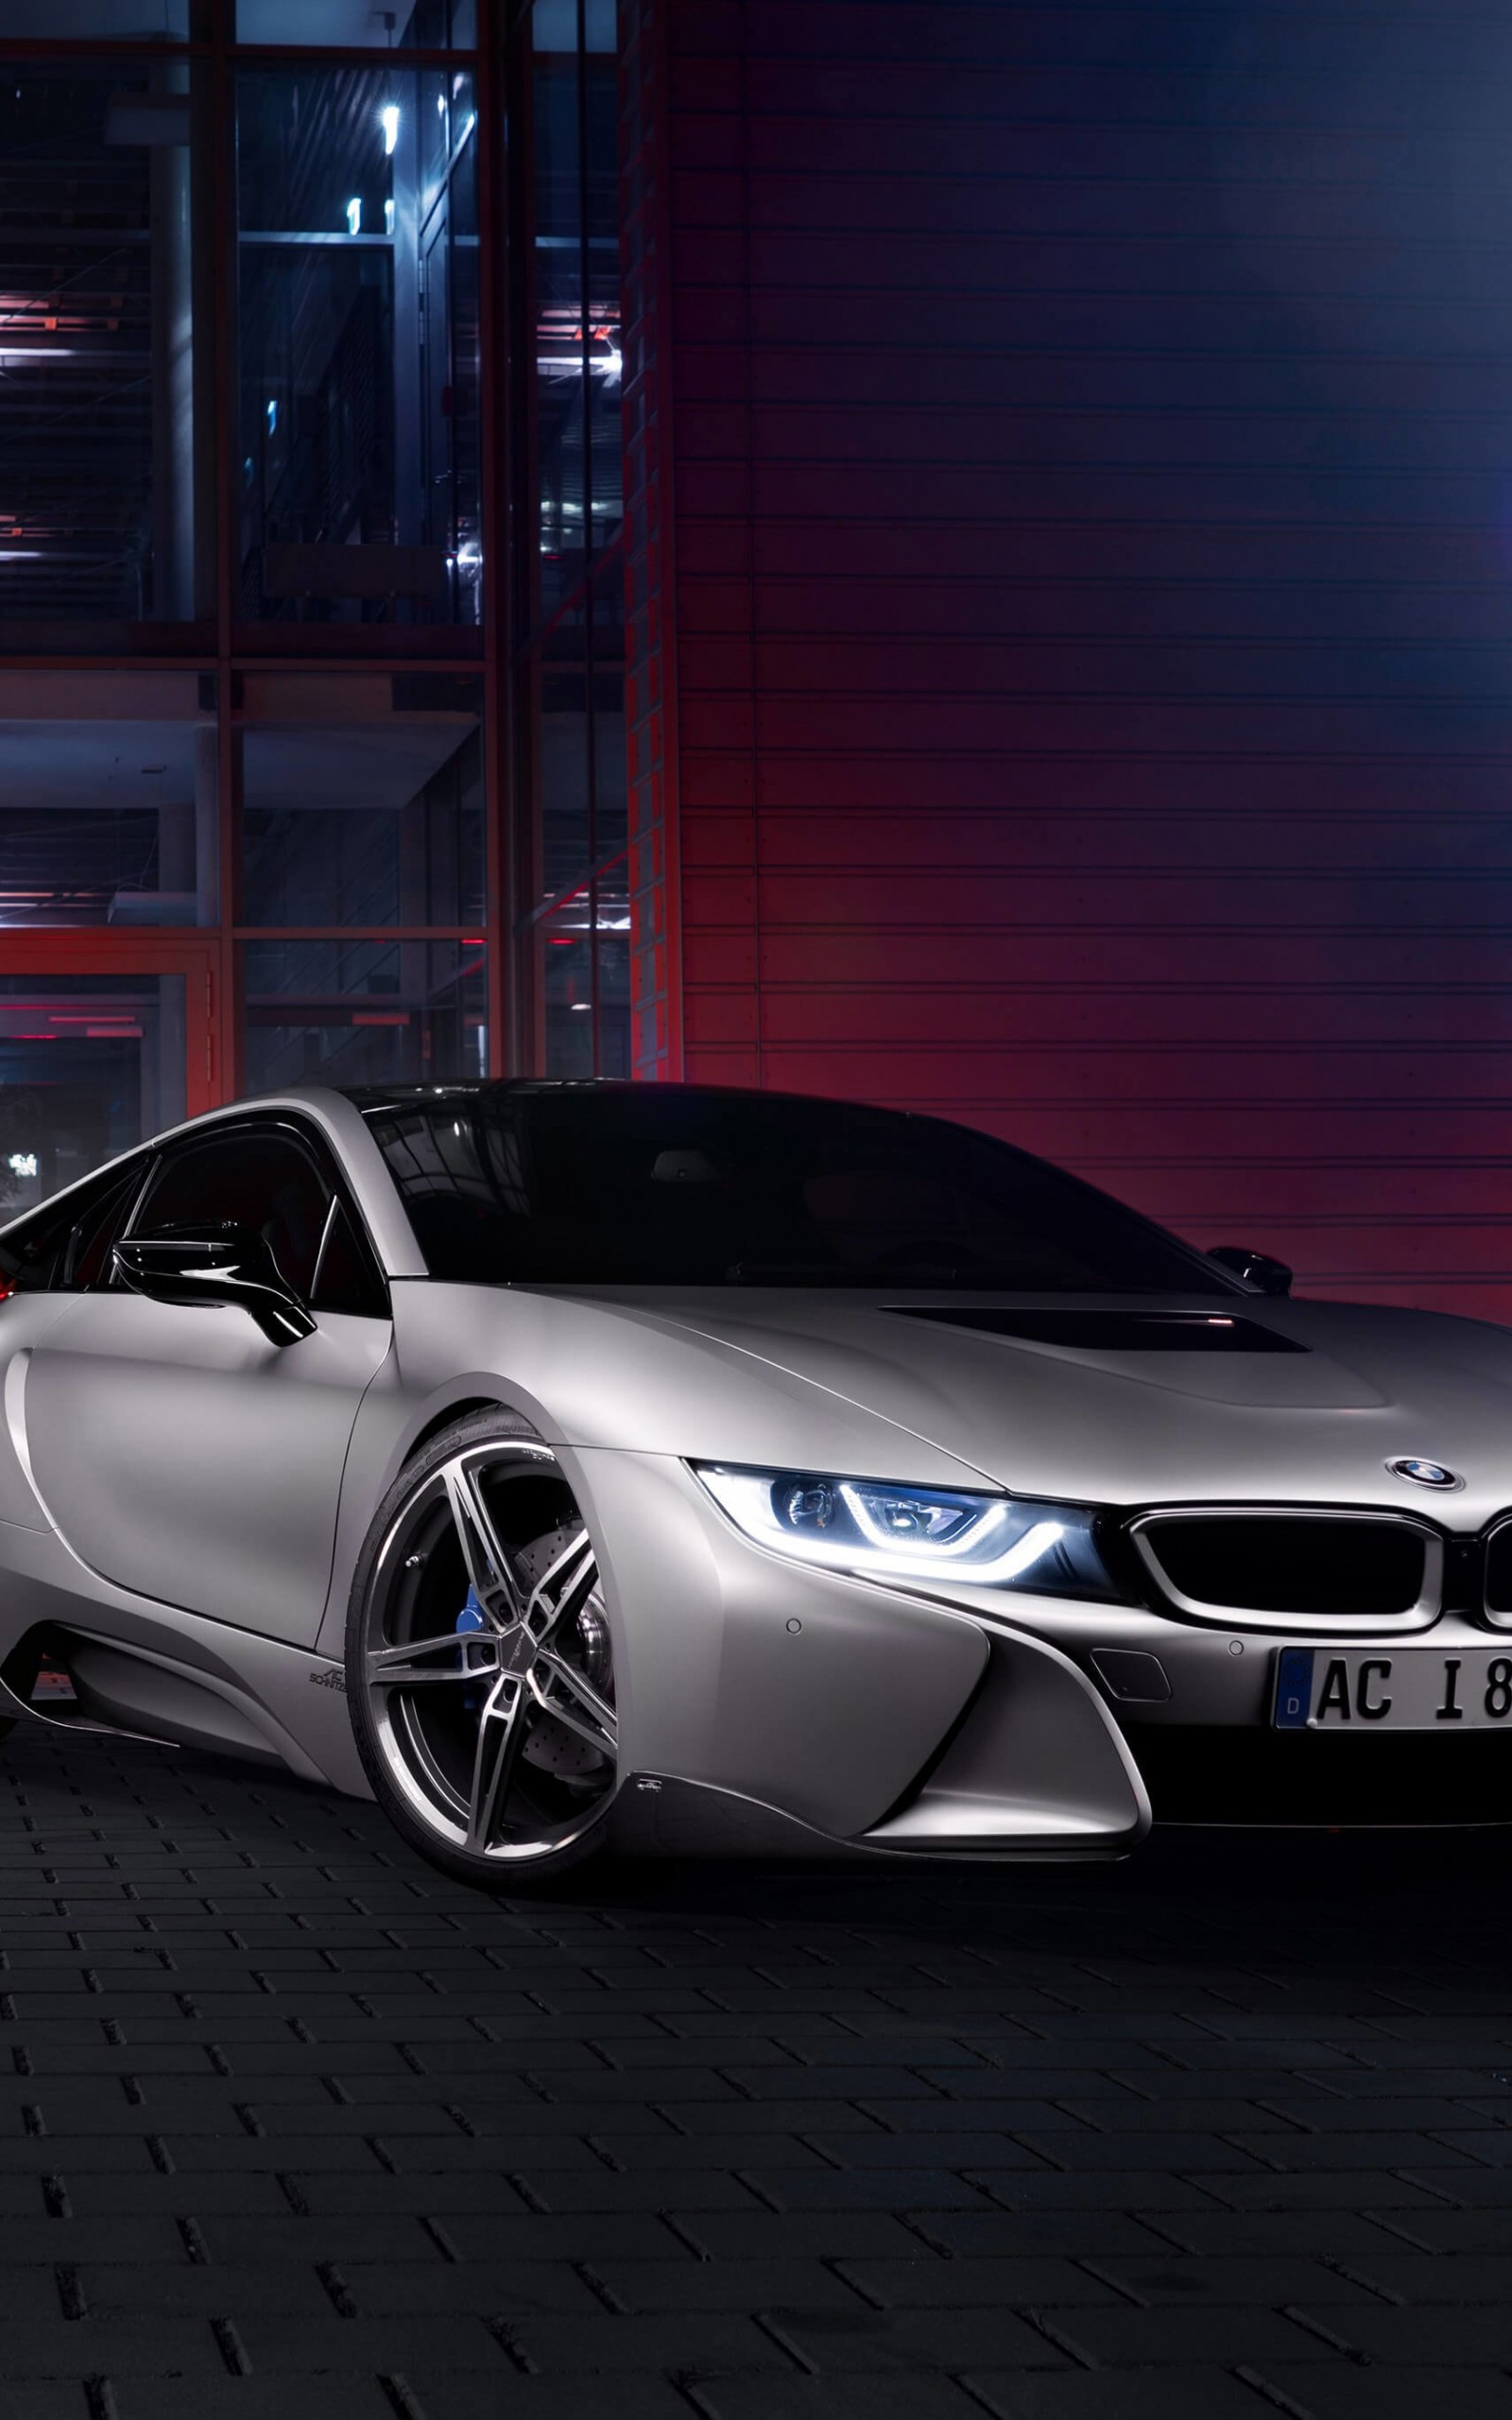 BMW i8 designed by AC Schnitzer Wallpaper for Amazon Kindle Fire HDX 8.9